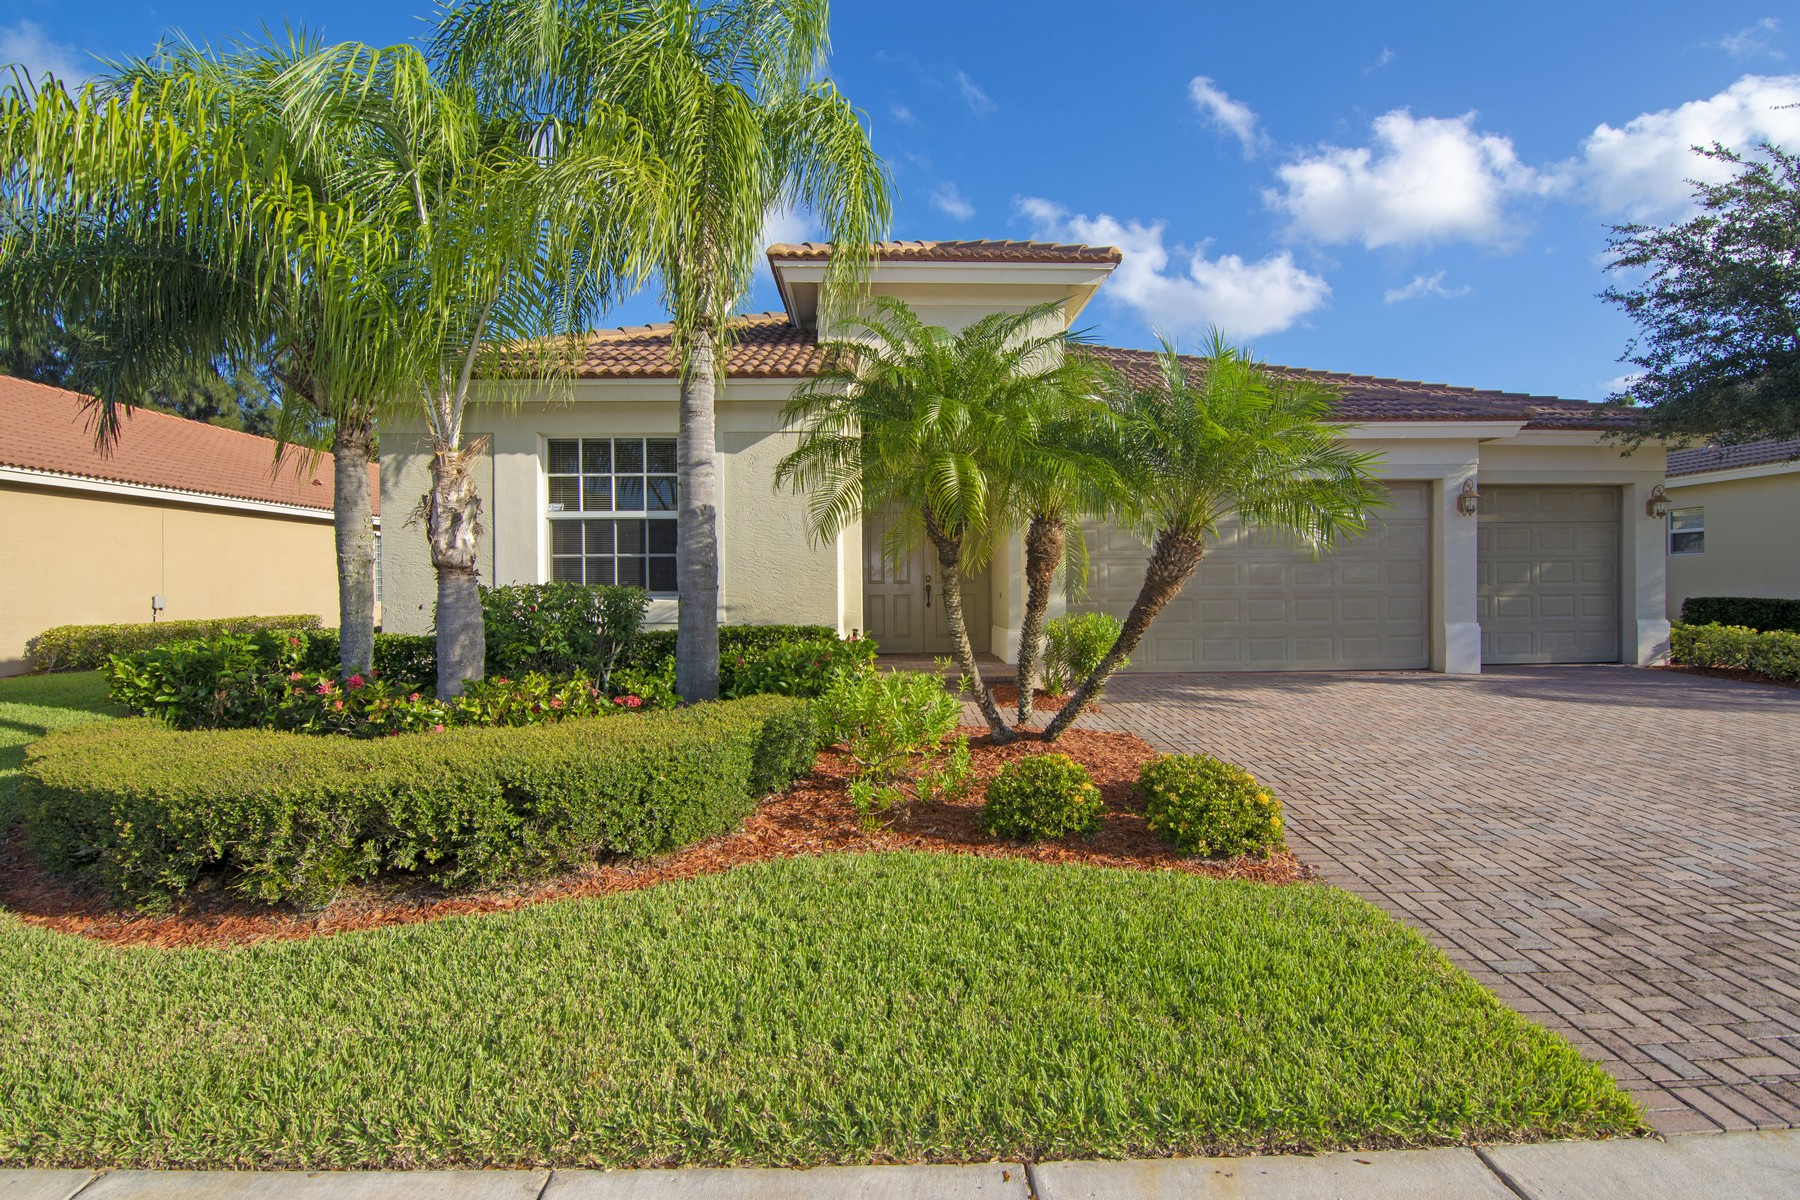 Single Family Homes for Sale at Spectacular Four Bedroom Home 6212 Coverty Place Vero Beach, Florida 32966 United States